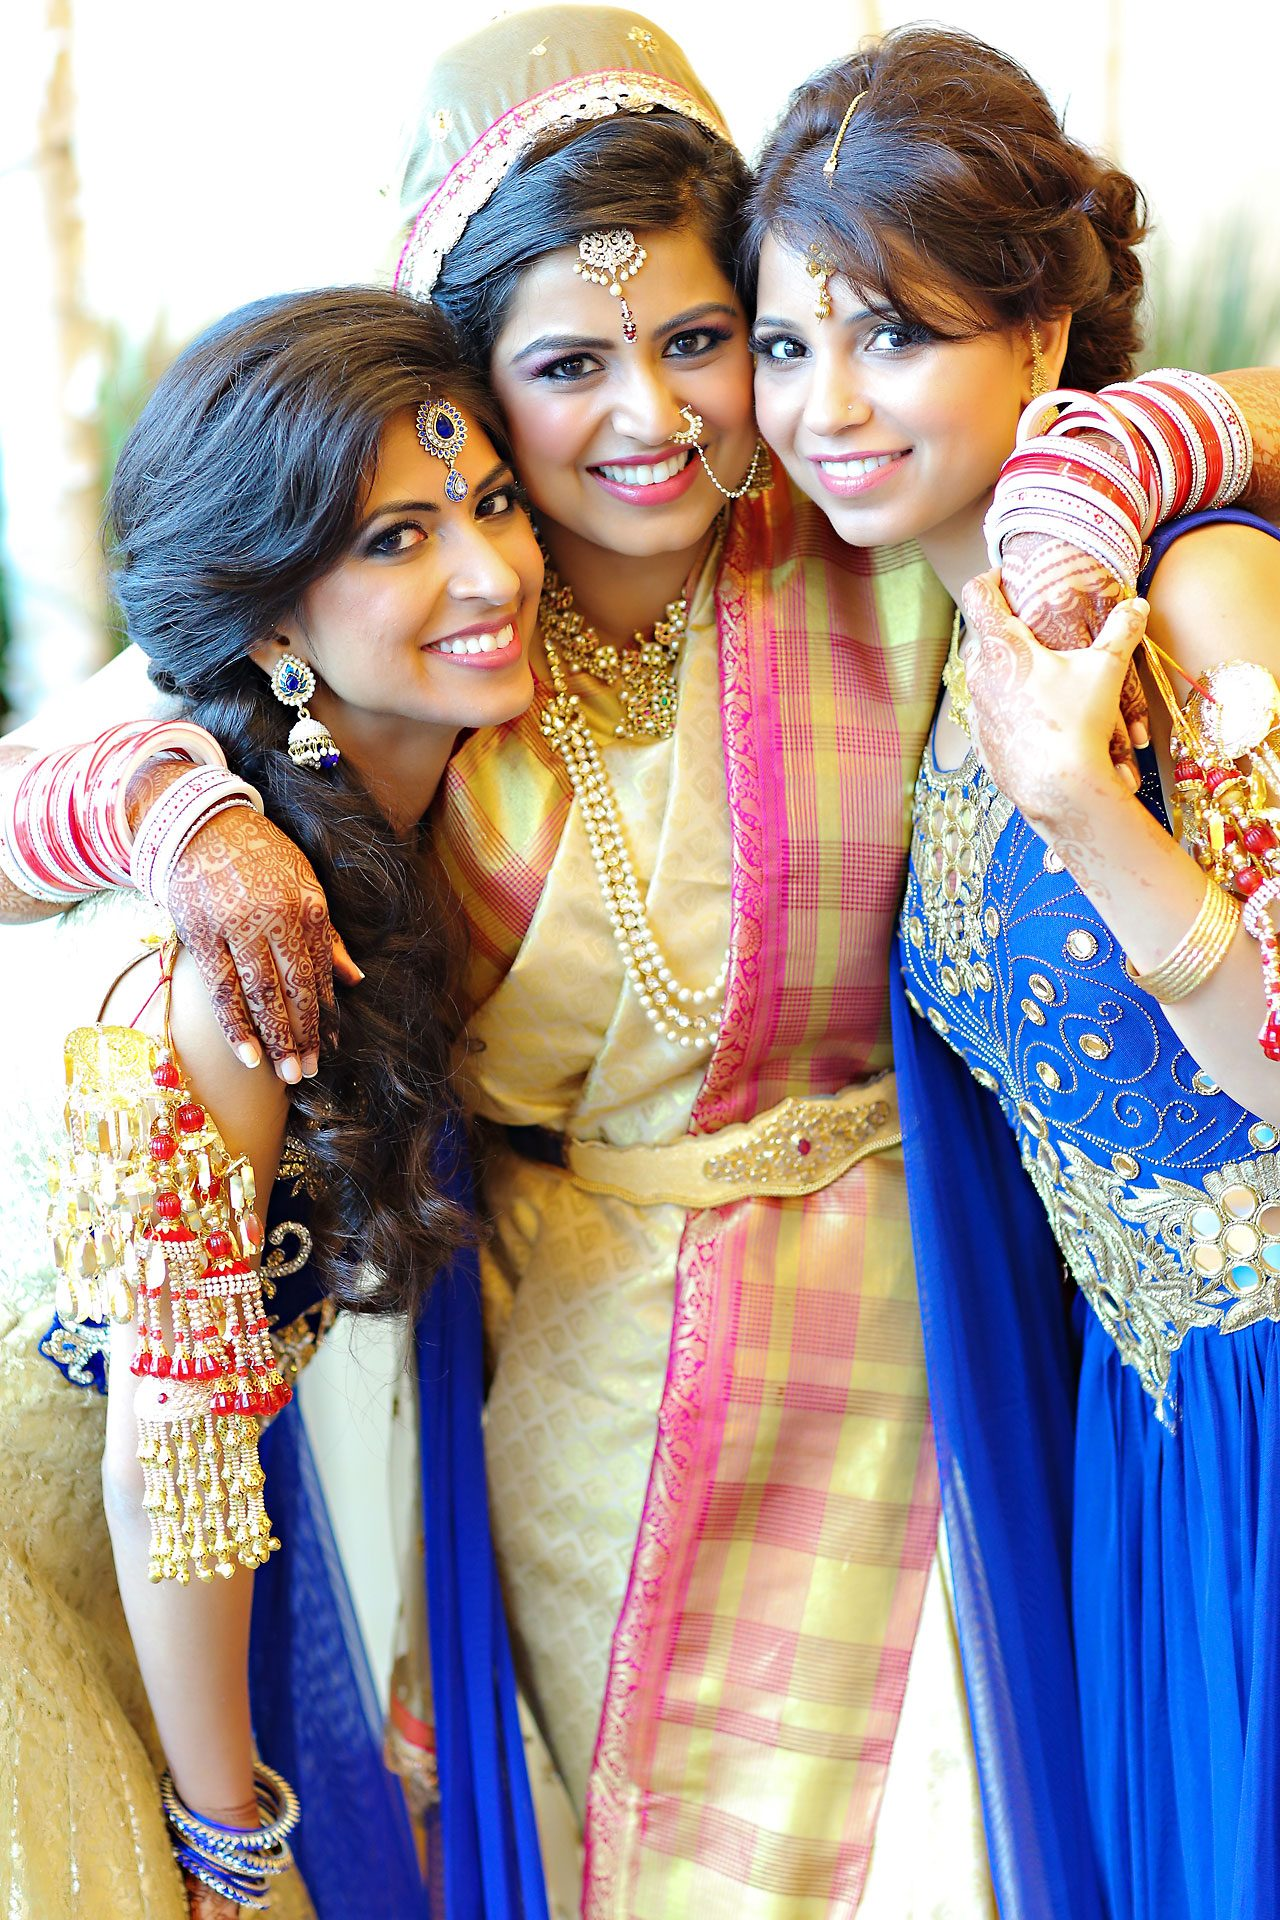 092 Vandana Anurag Indianapolis Indian Wedding